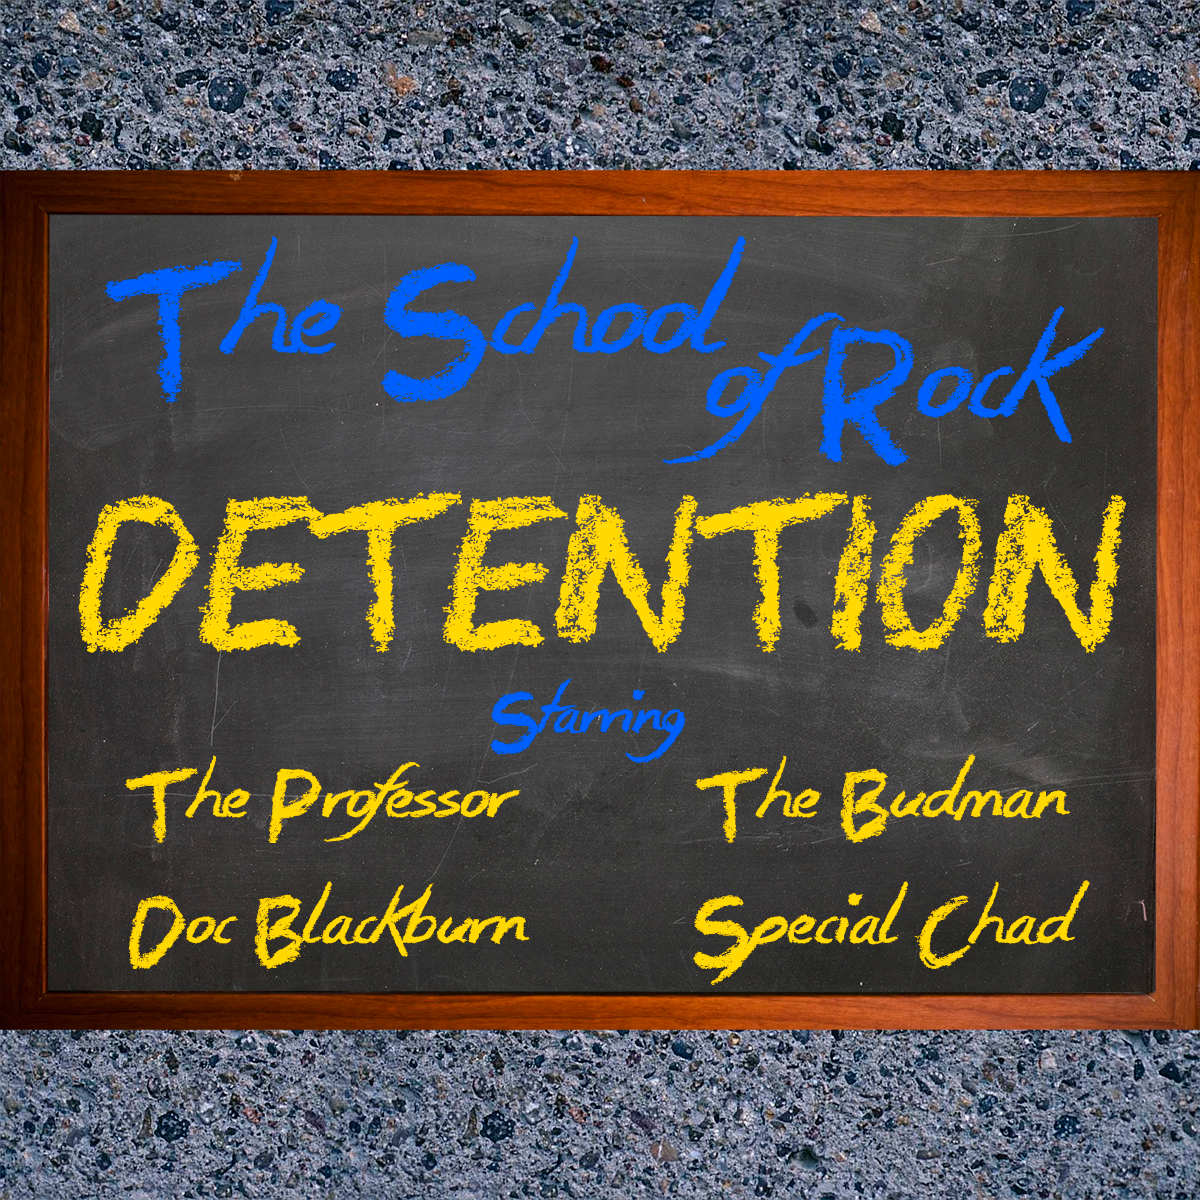 The School of Rock - Detention